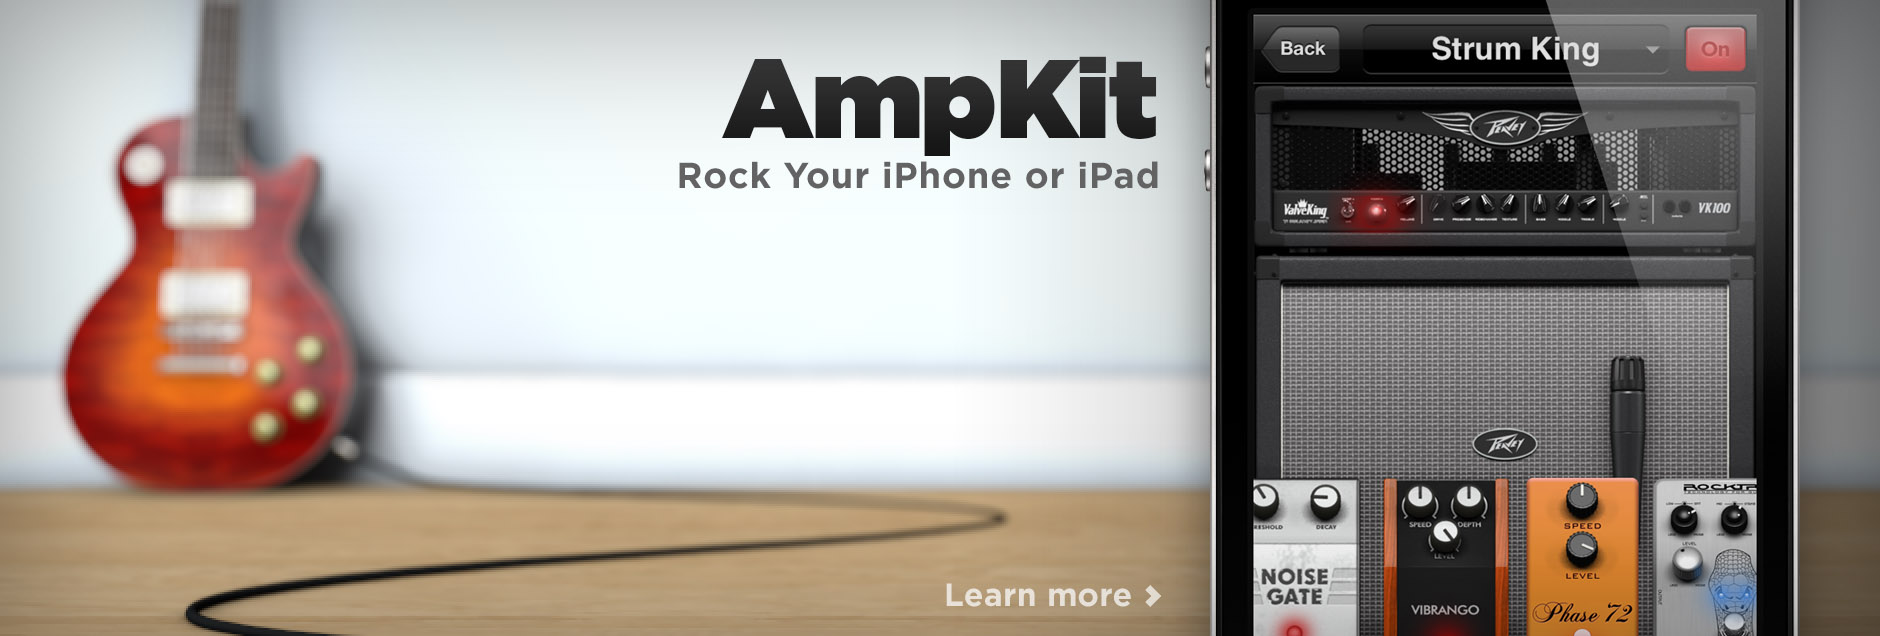 AmpKit - Rock your iPad, iPhone or iPod touch